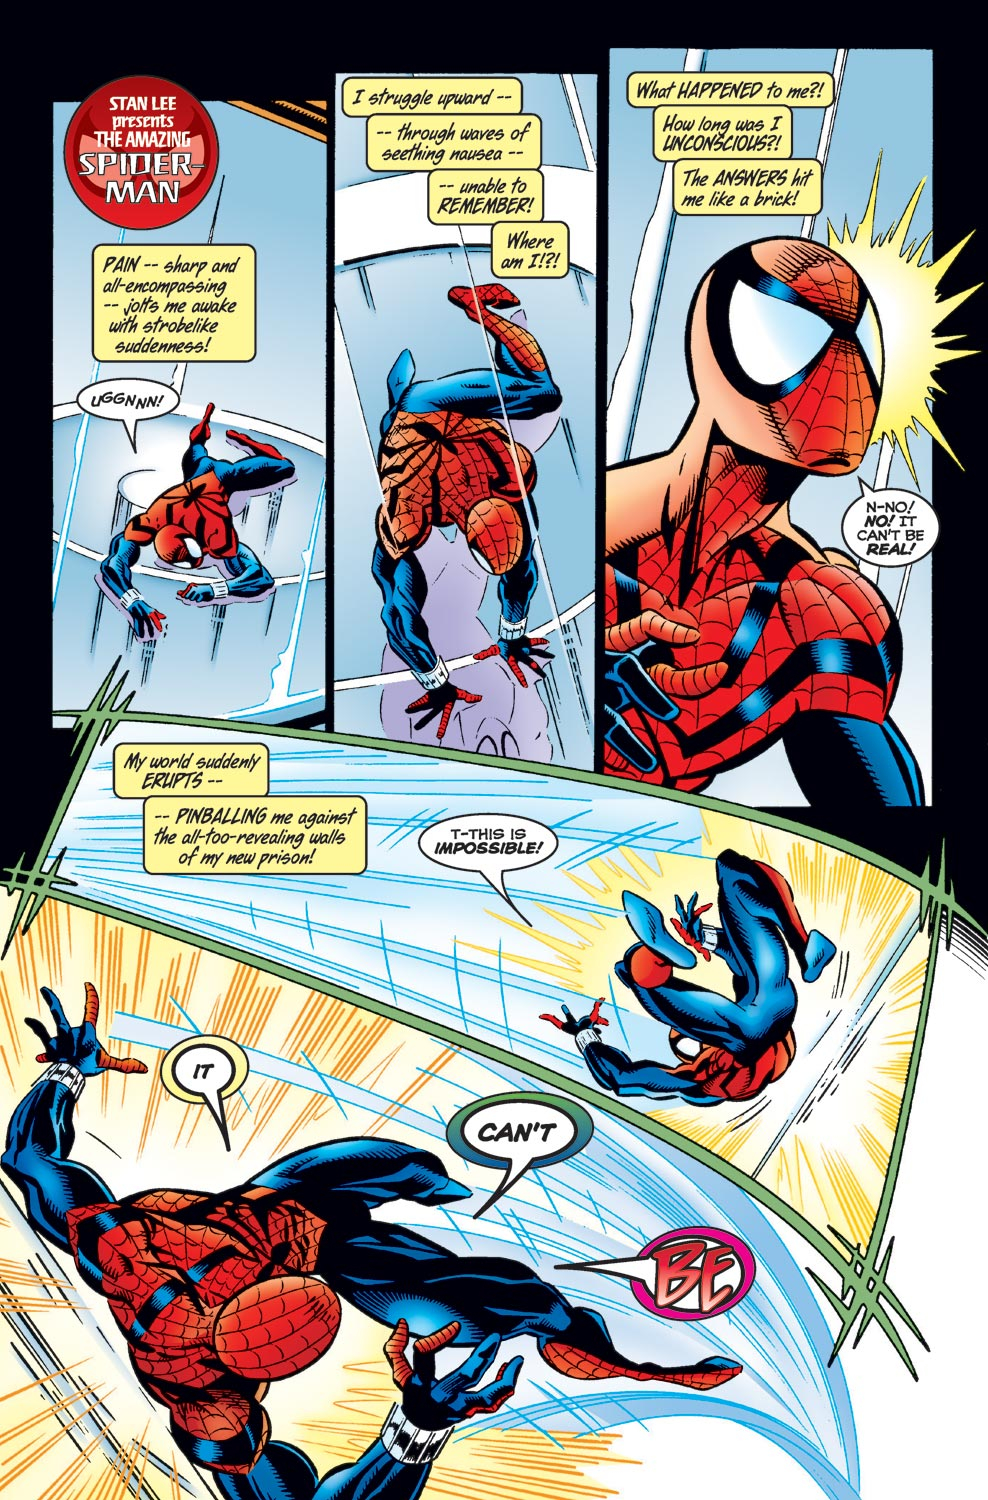 The Amazing Spider-Man (1963) 413 Page 1